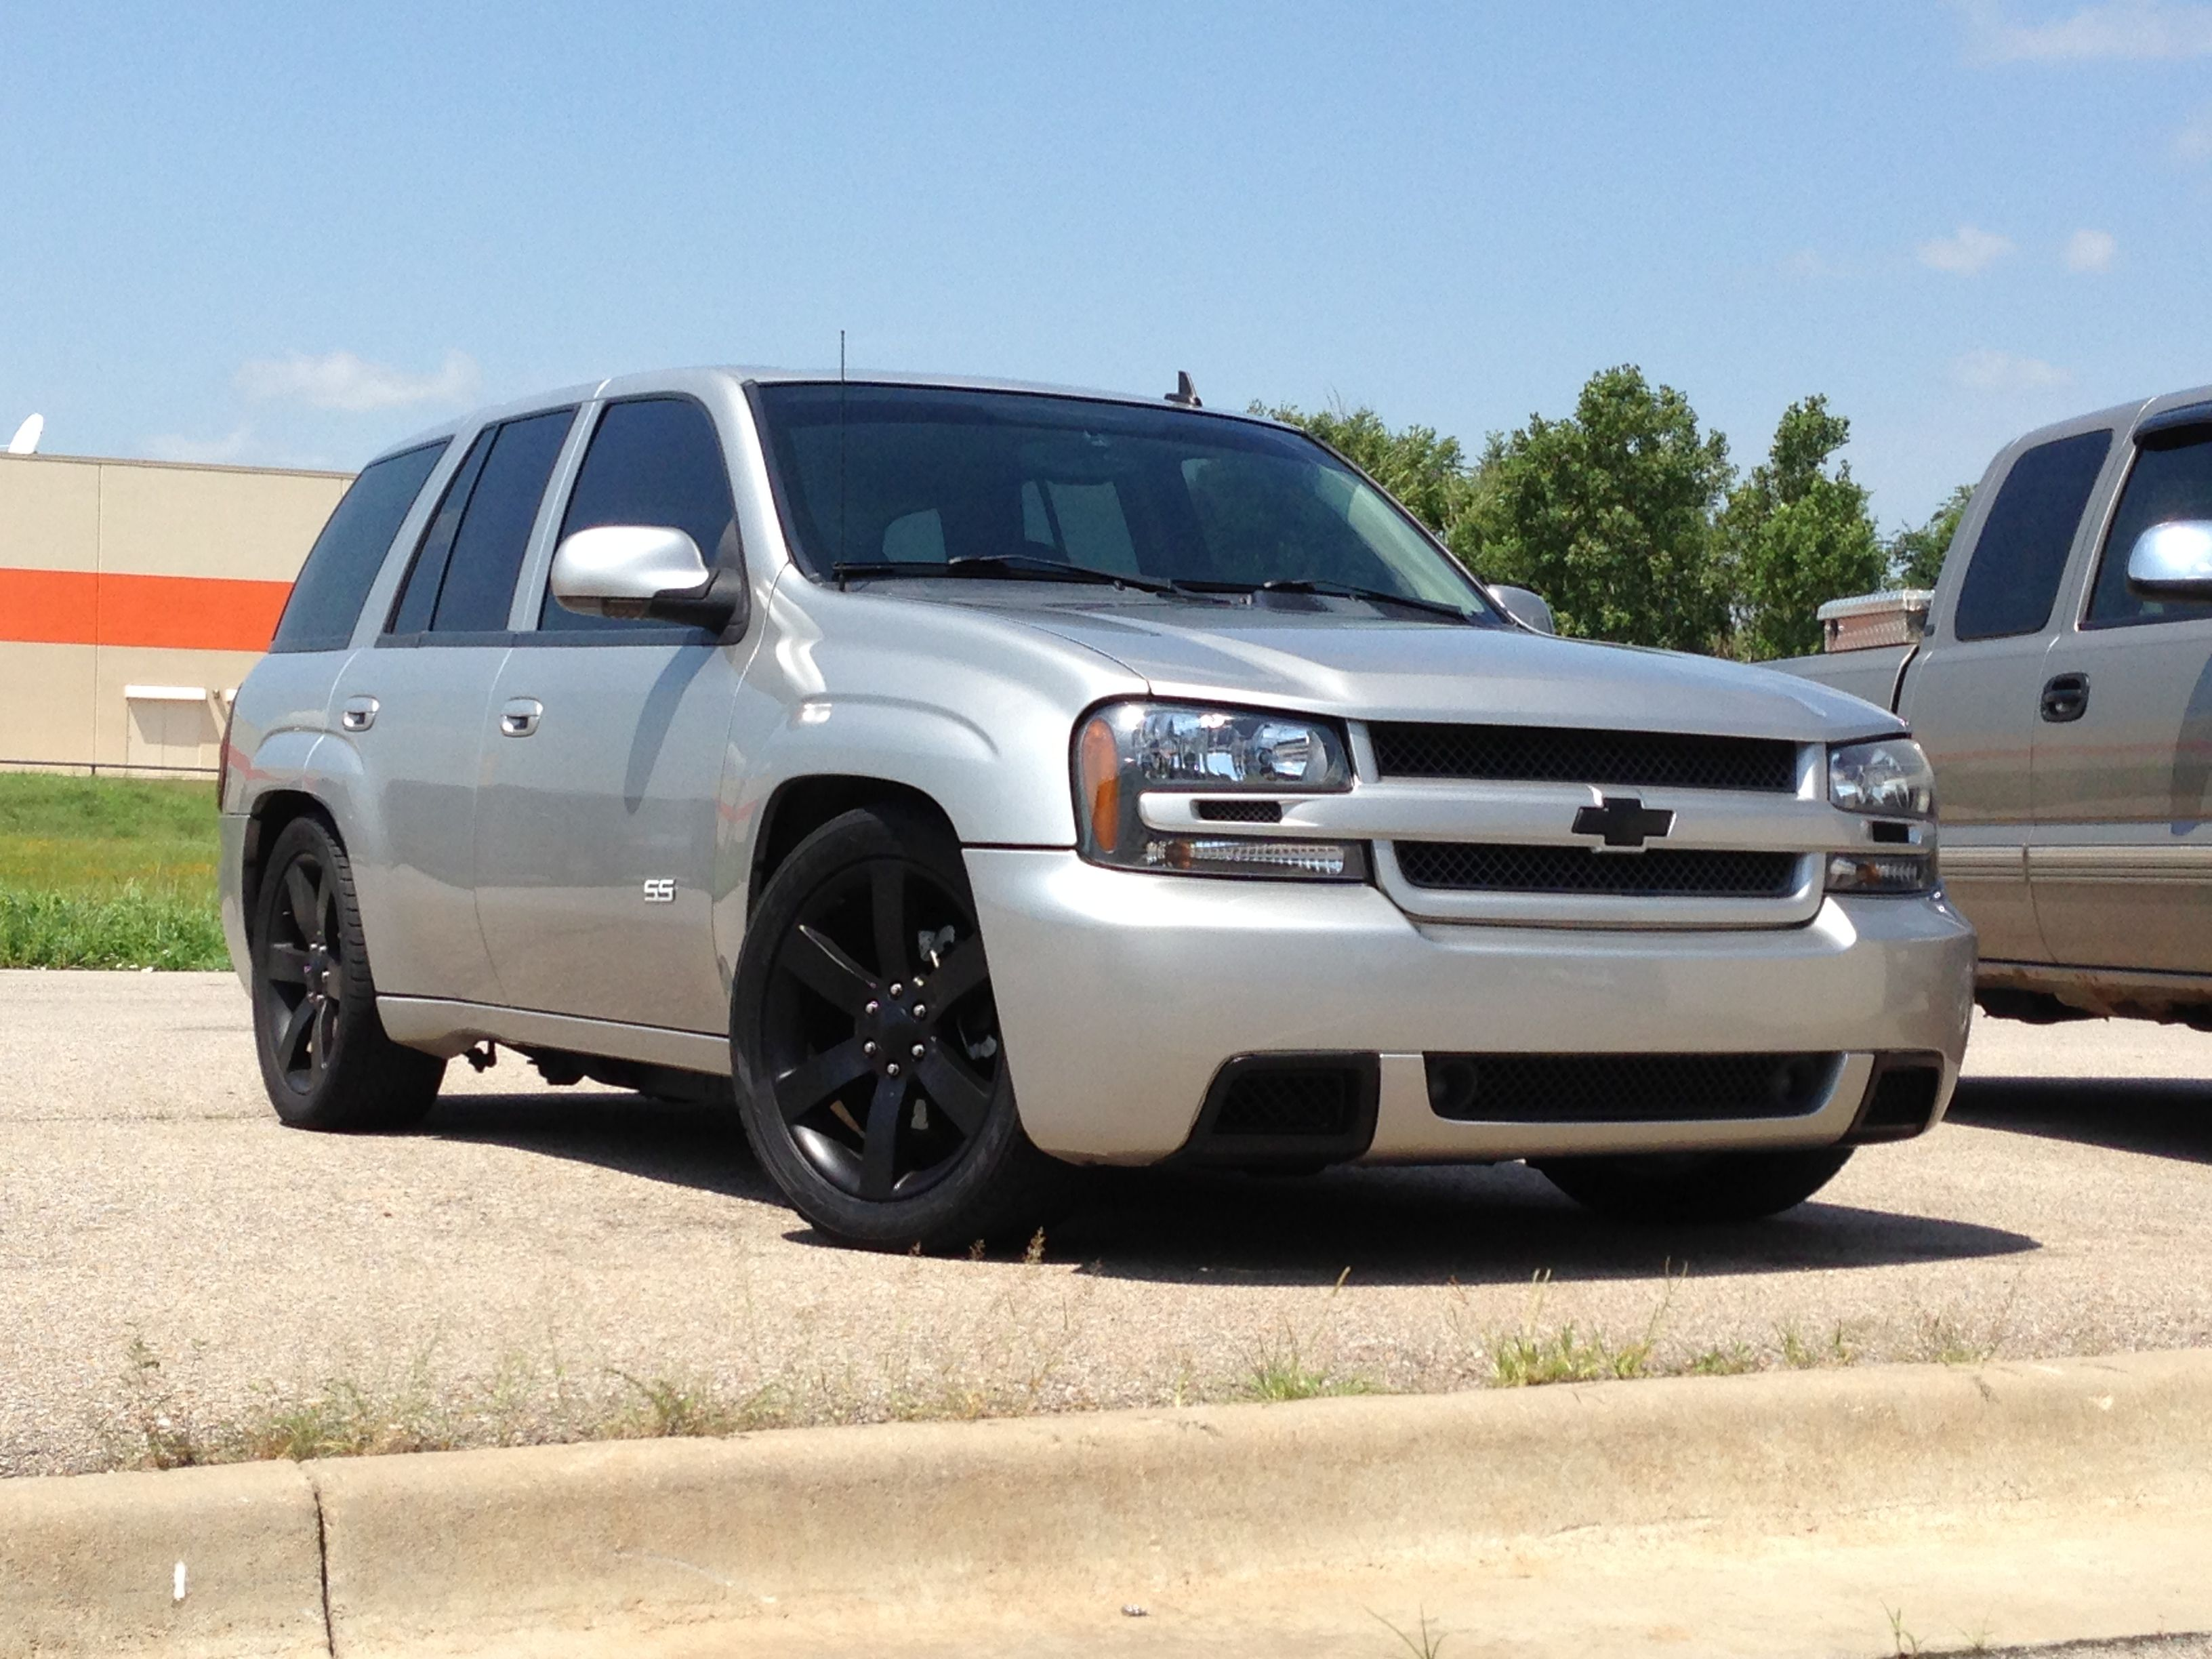 2006 Trailblazer SS | My cars | Pinterest | Trailblazer ss and Chevy